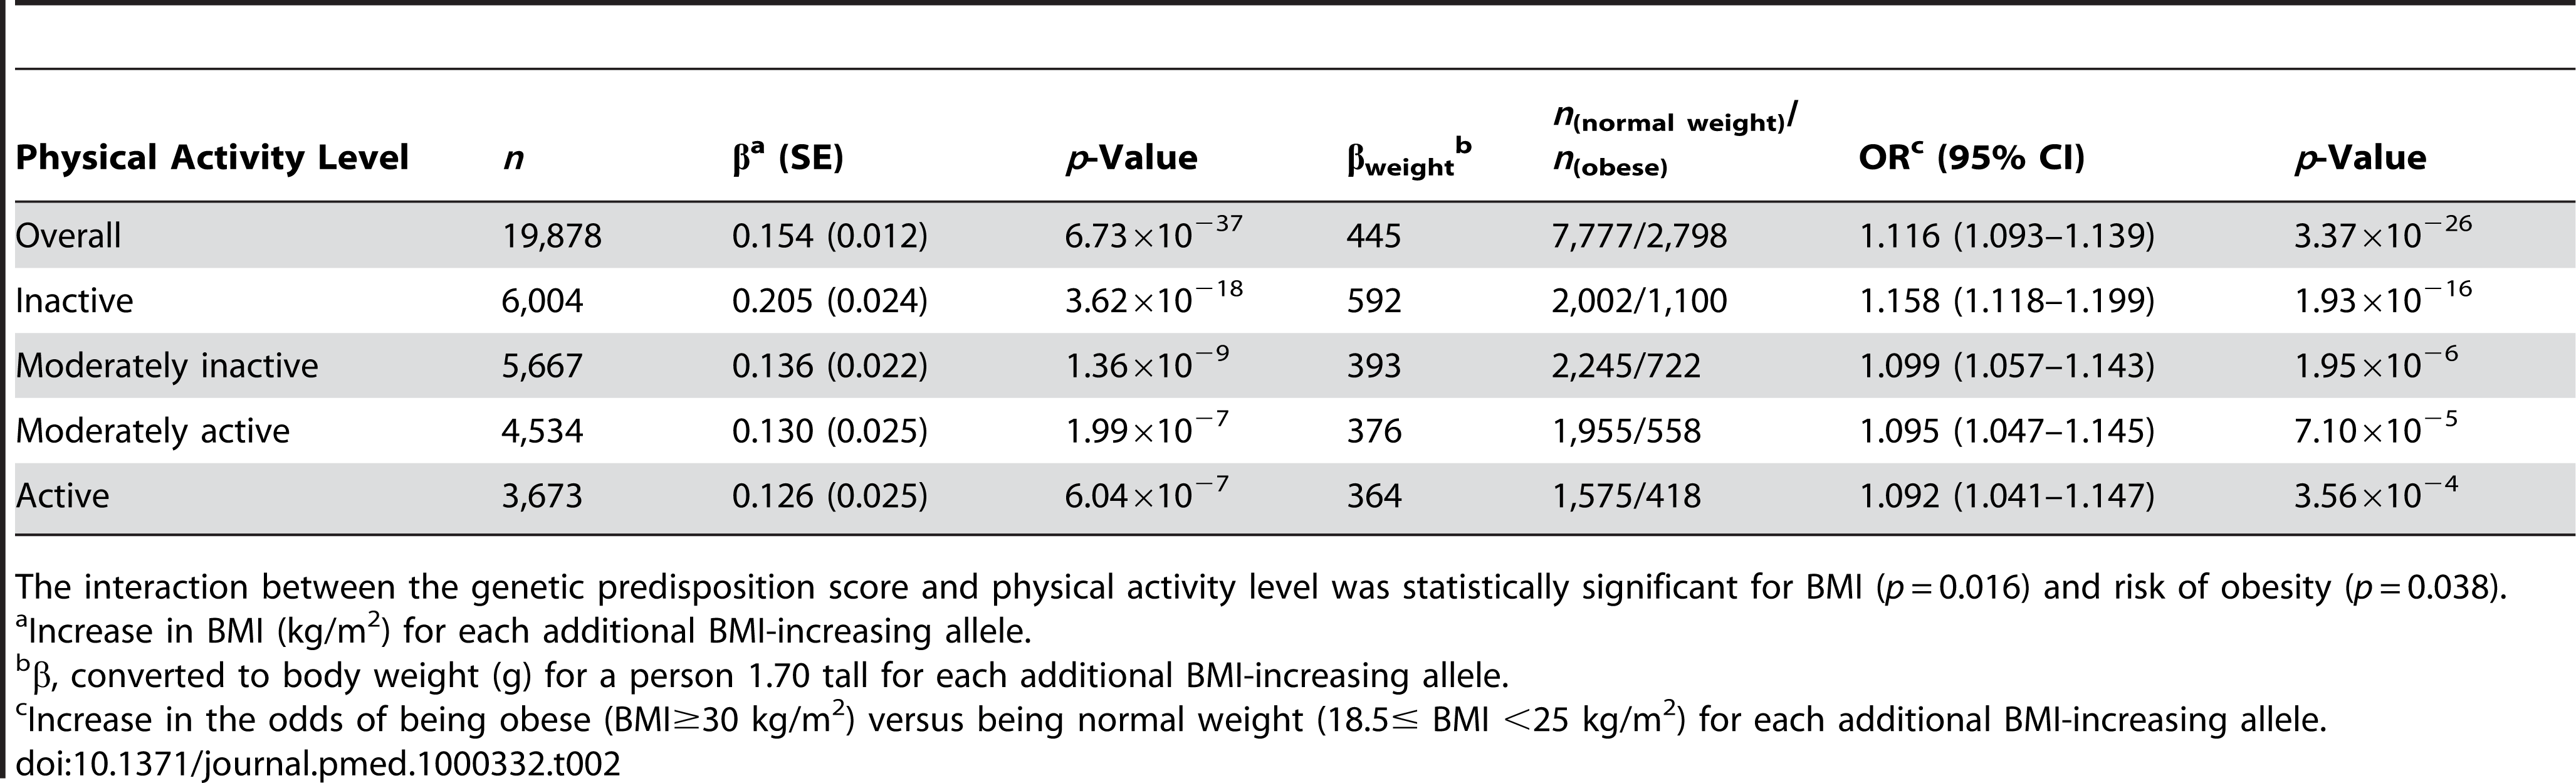 Associations of the genetic predisposition score with BMI and risk of obesity in the total population and stratified by physical activity level.